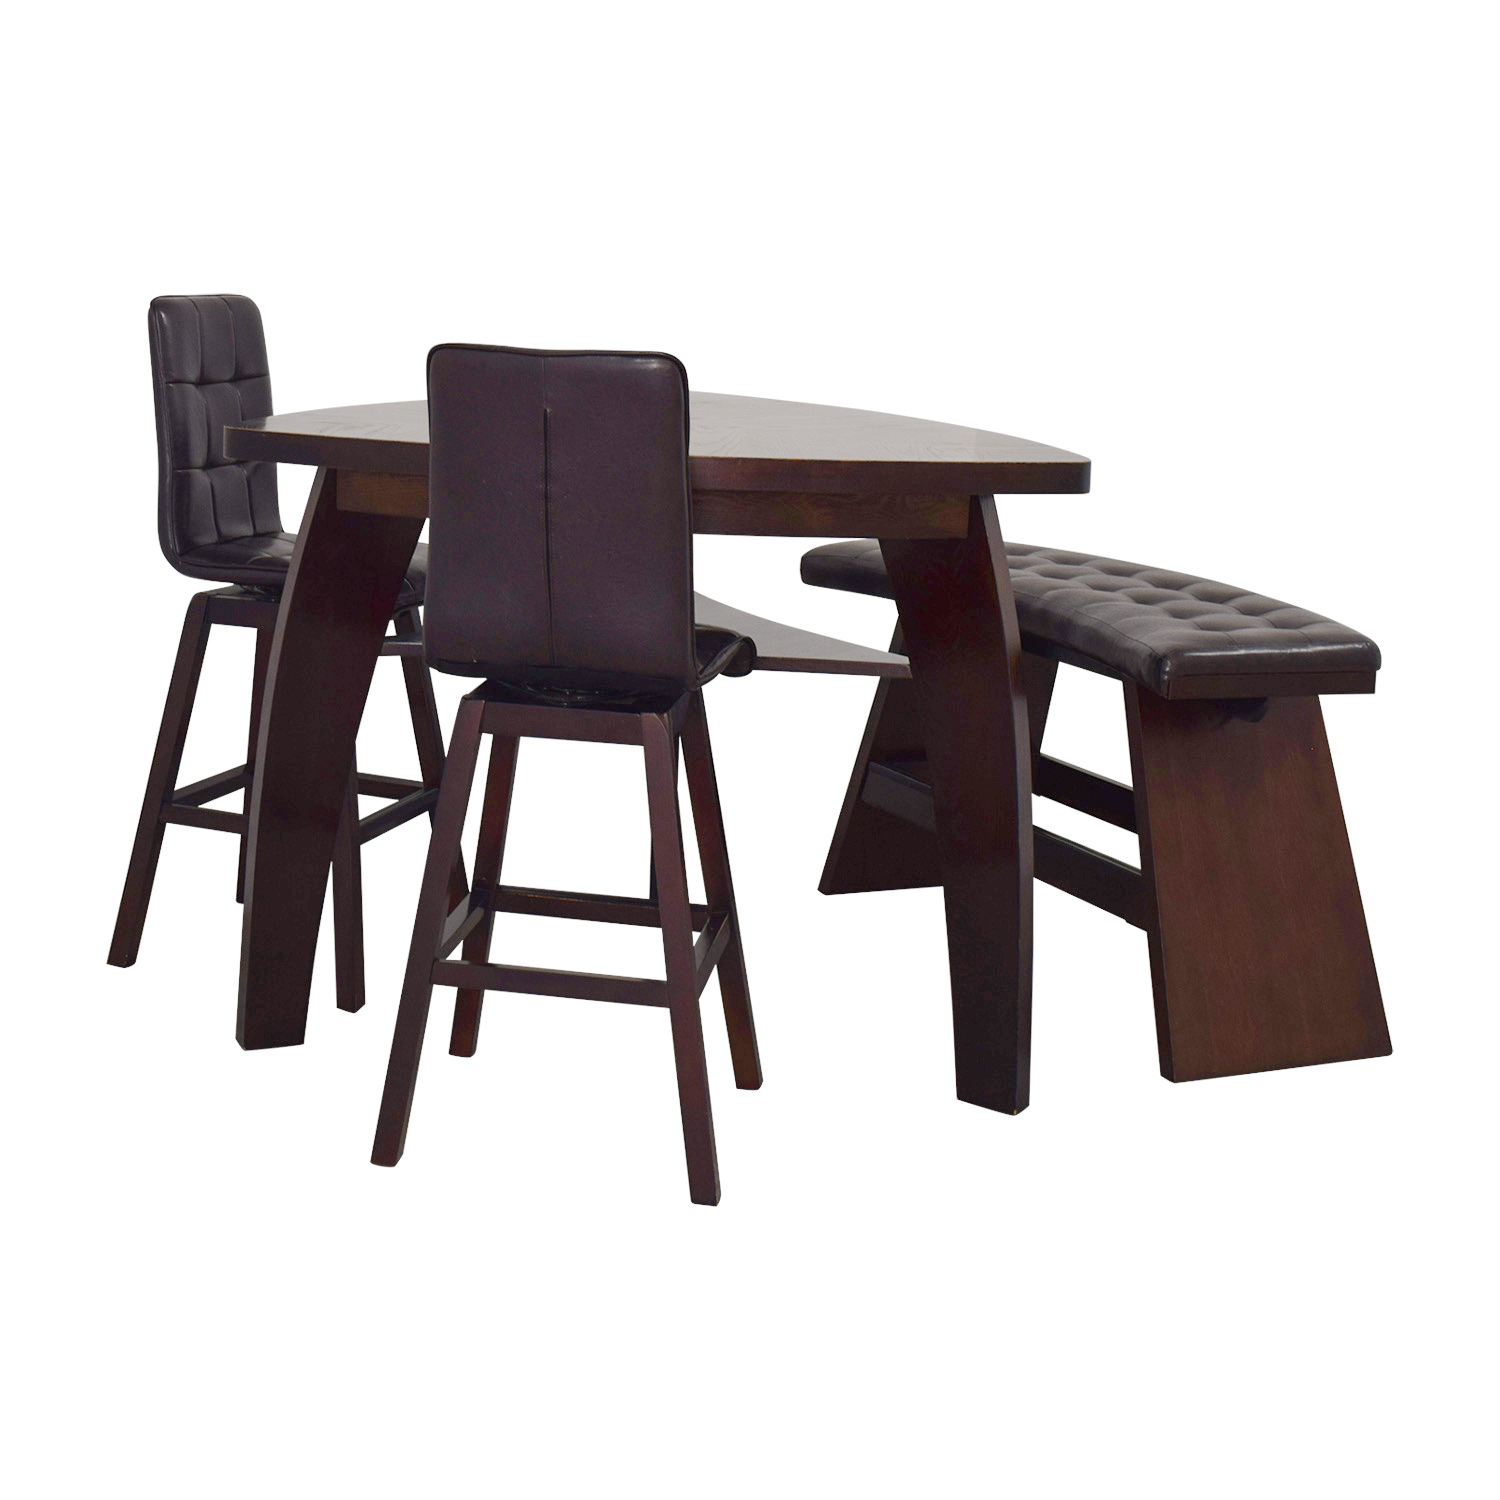 Wondrous 76 Off Bobs Discount Furniture Bobs Furniture Boomerang Bar Stool And Bench Set Tables Home Interior And Landscaping Ologienasavecom